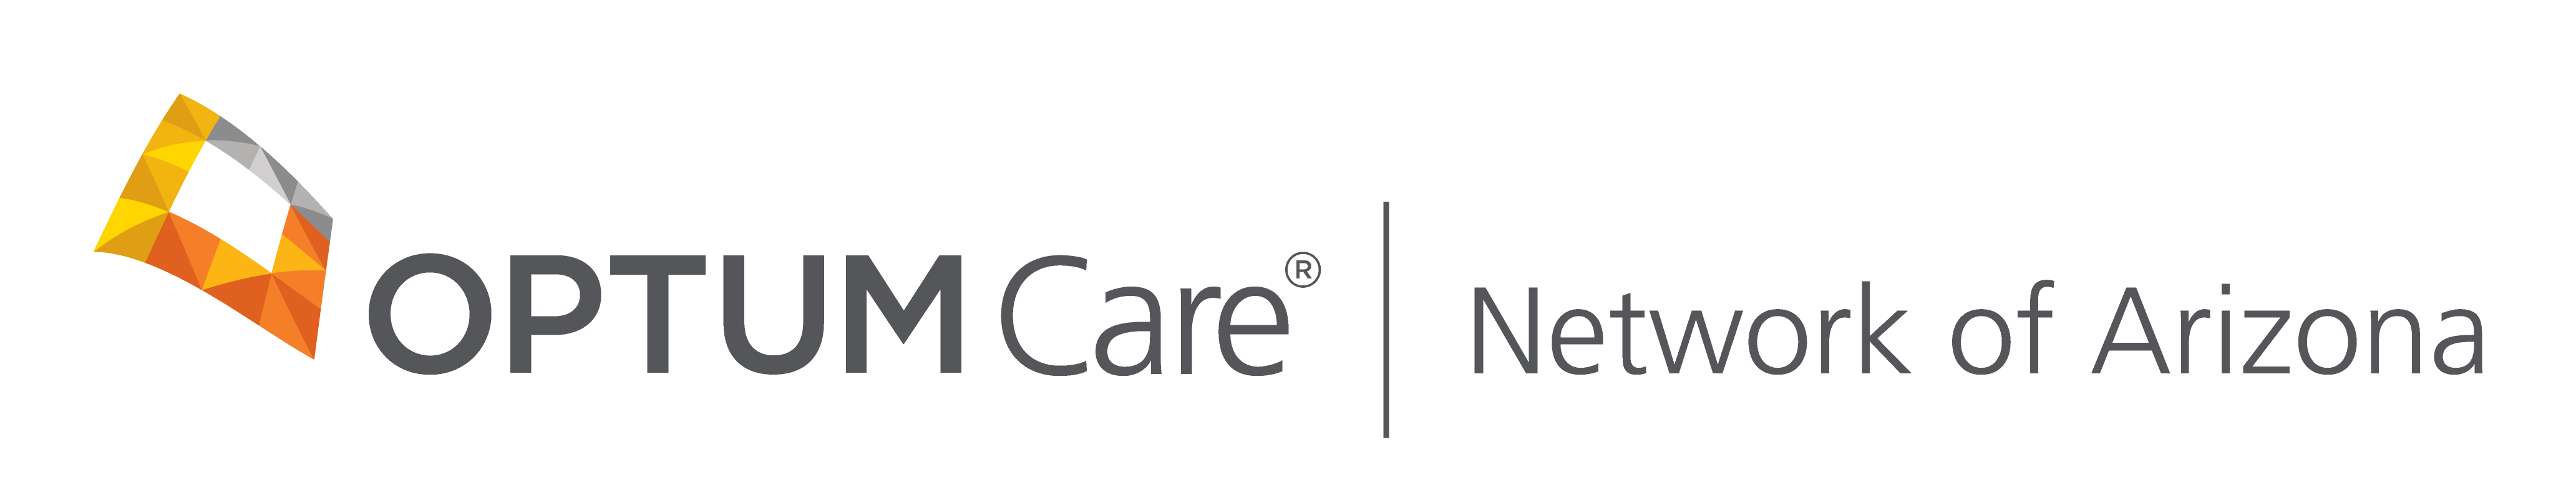 OptumCare Network of Arizona